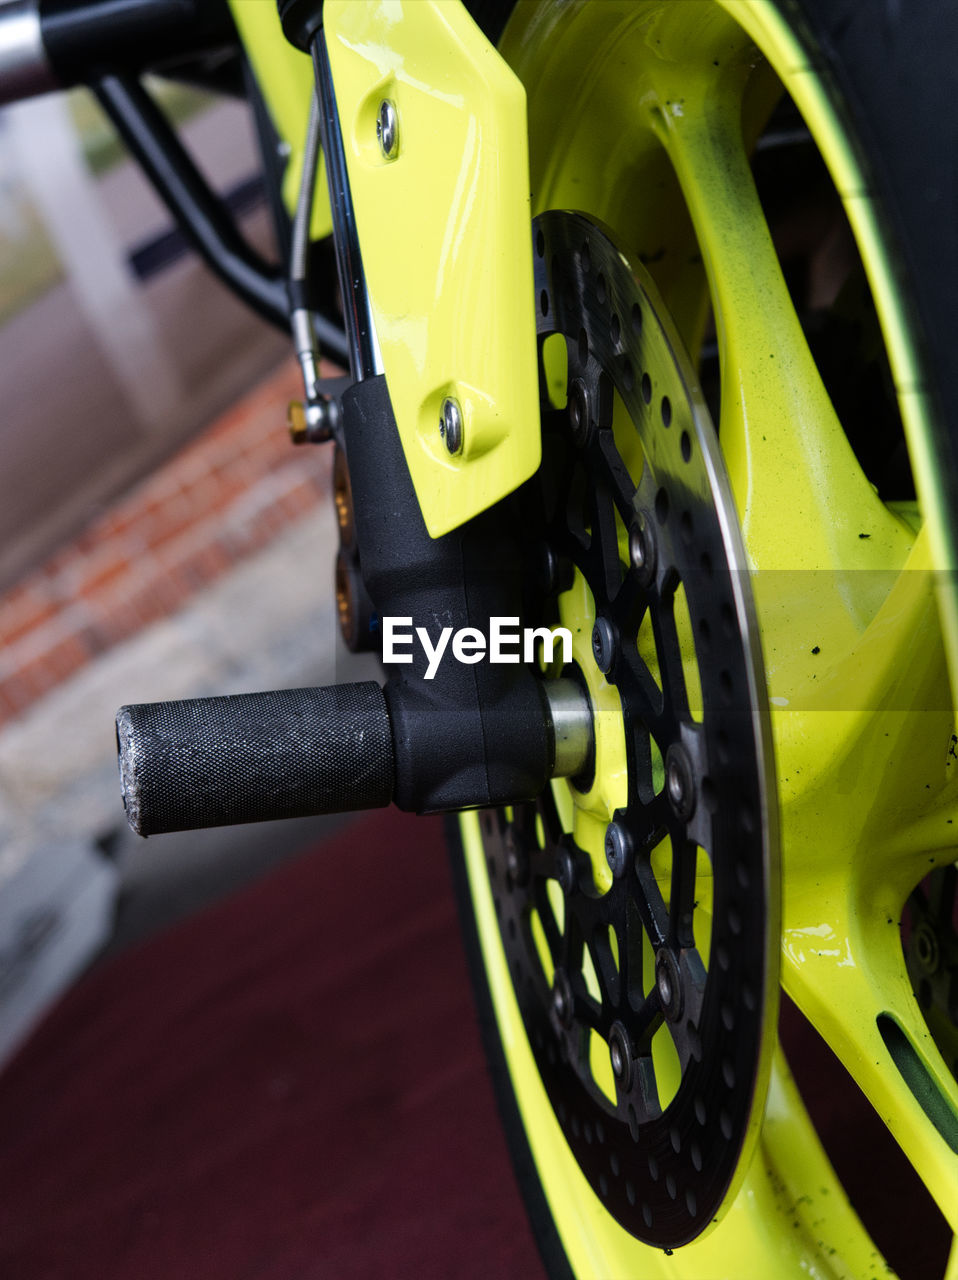 mode of transportation, land vehicle, transportation, bicycle, close-up, stationary, metal, yellow, focus on foreground, no people, handlebar, day, handle, wheel, vehicle part, pedal, high angle view, sport, motorcycle, outdoors, tire, spoke